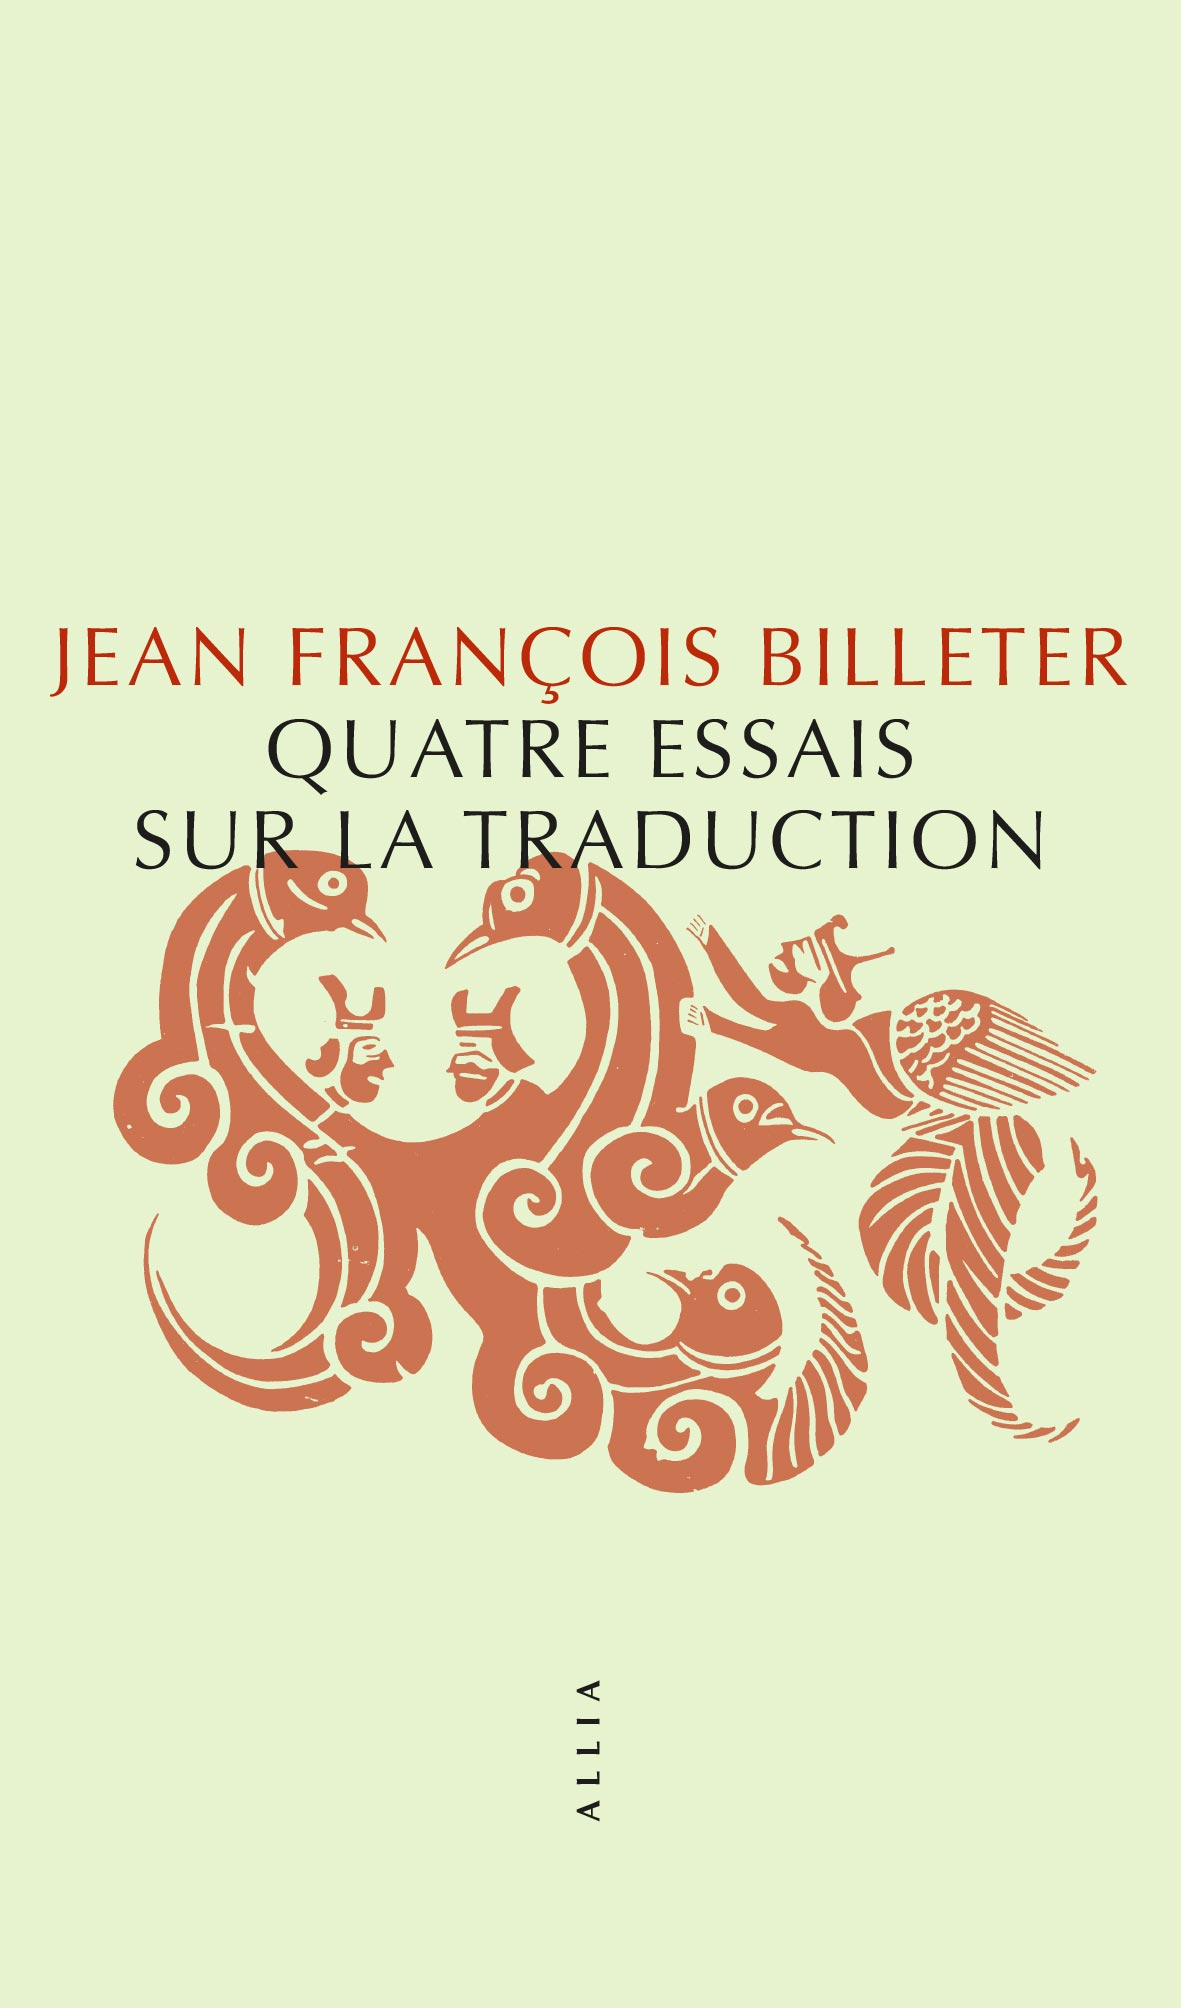 J-F. Billeter, Quatre essais sur la traduction